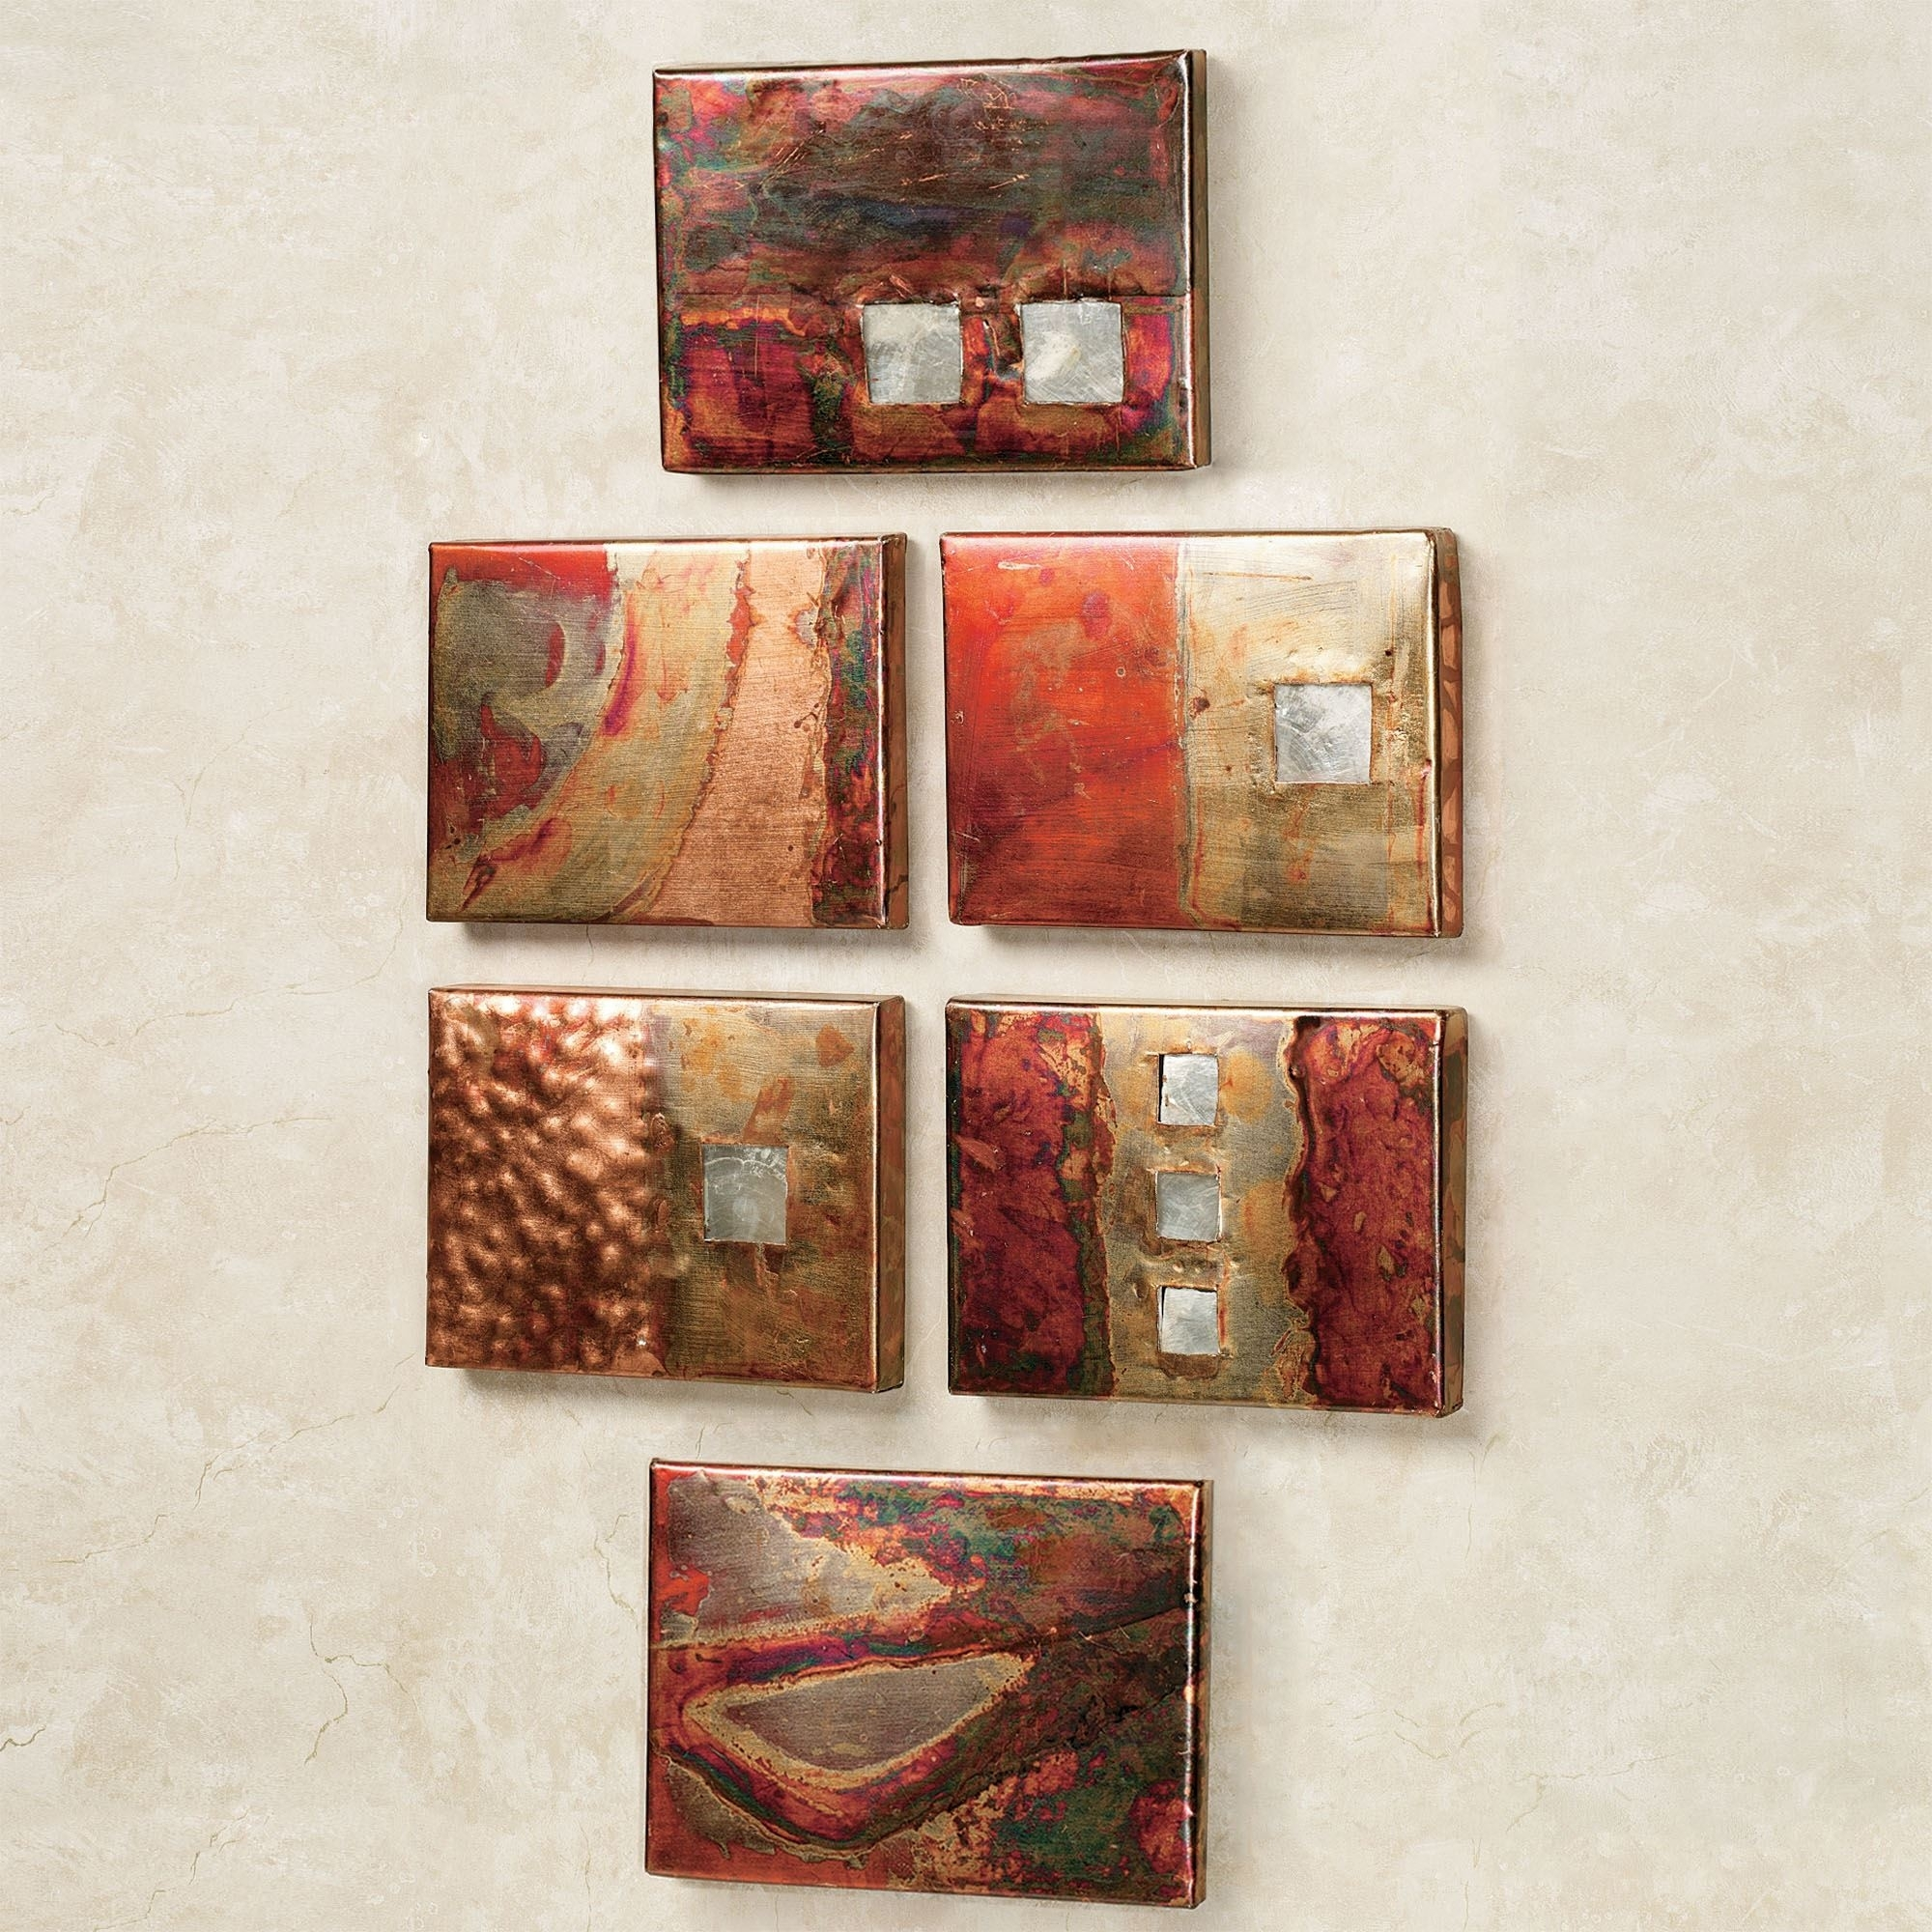 Copper Studio Metal Wall Art Plaque Set intended for Copper Wall Art (Image 6 of 20)